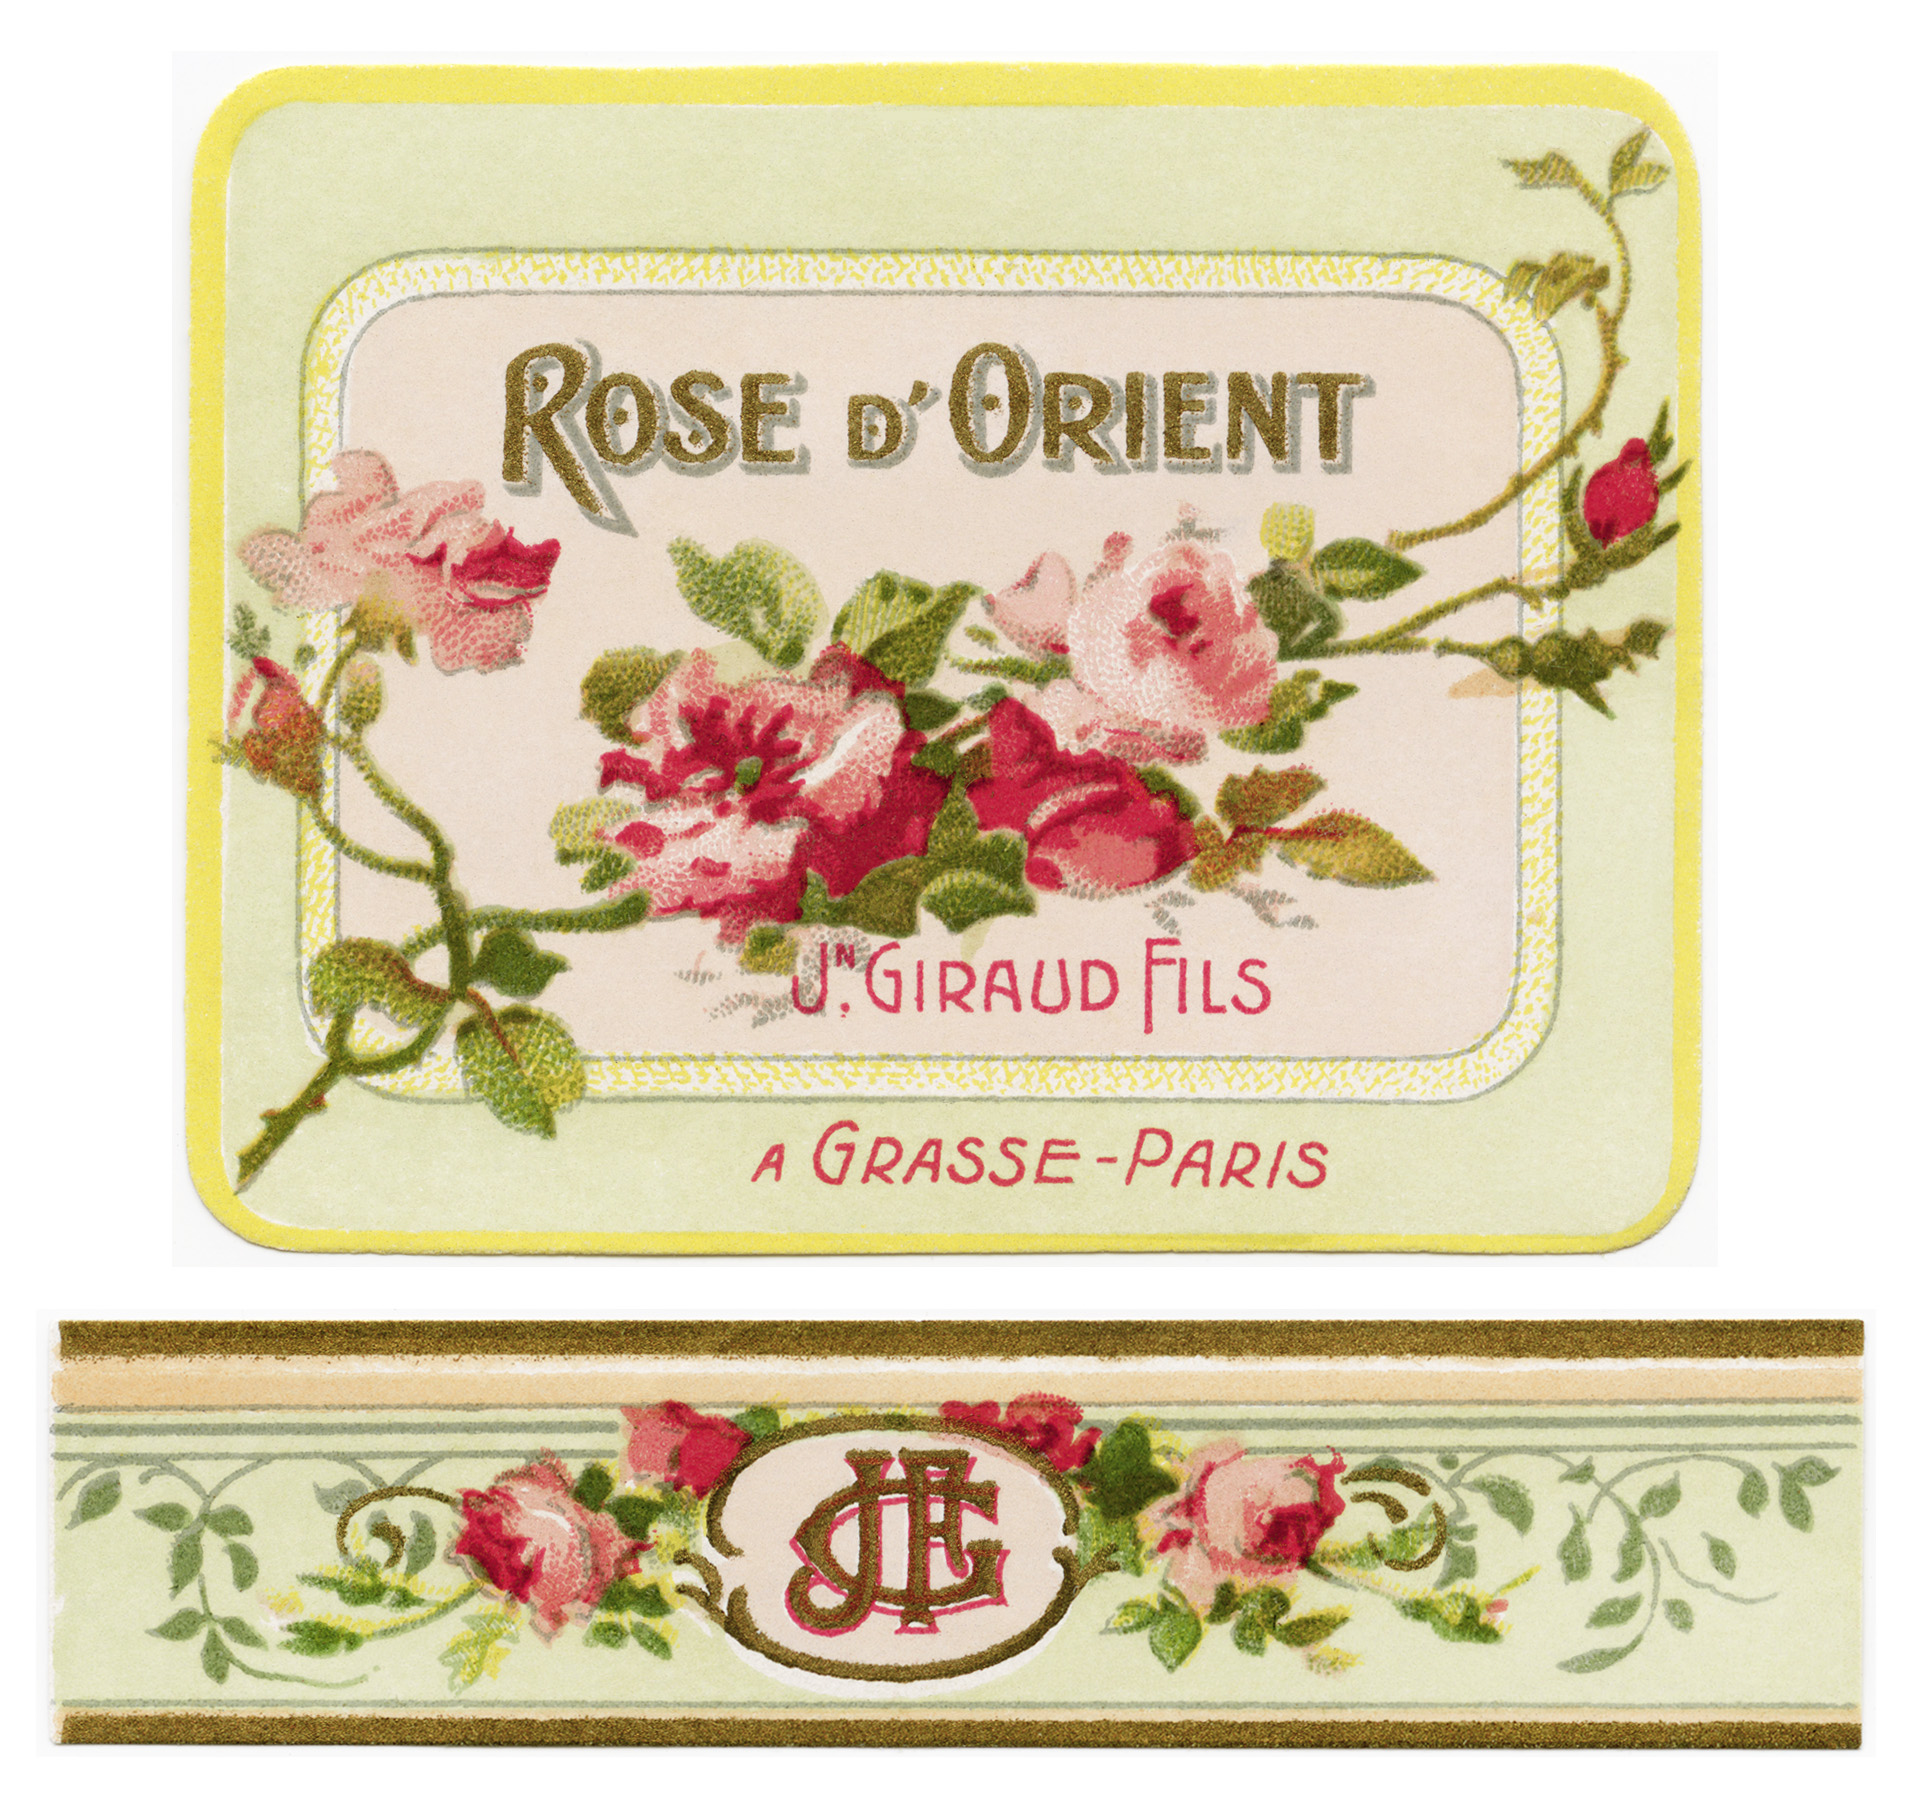 French perfume label, Jn Giraud fils, rose d'orient, vintage french ephemera, victorian roses printable